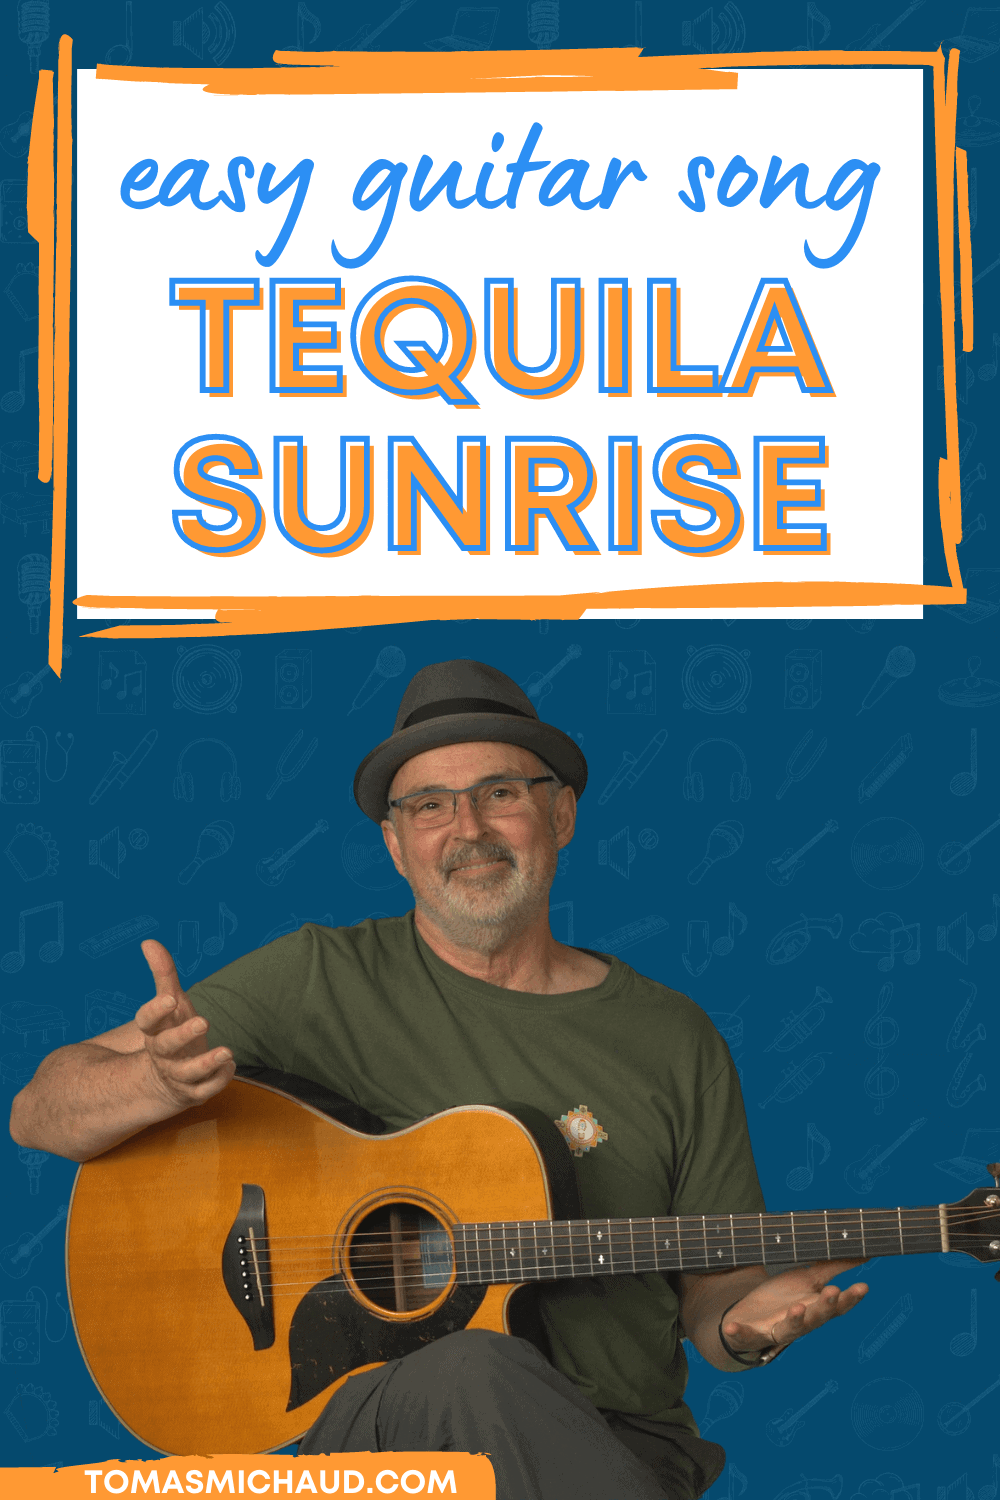 easy guitar song tequila sunrise